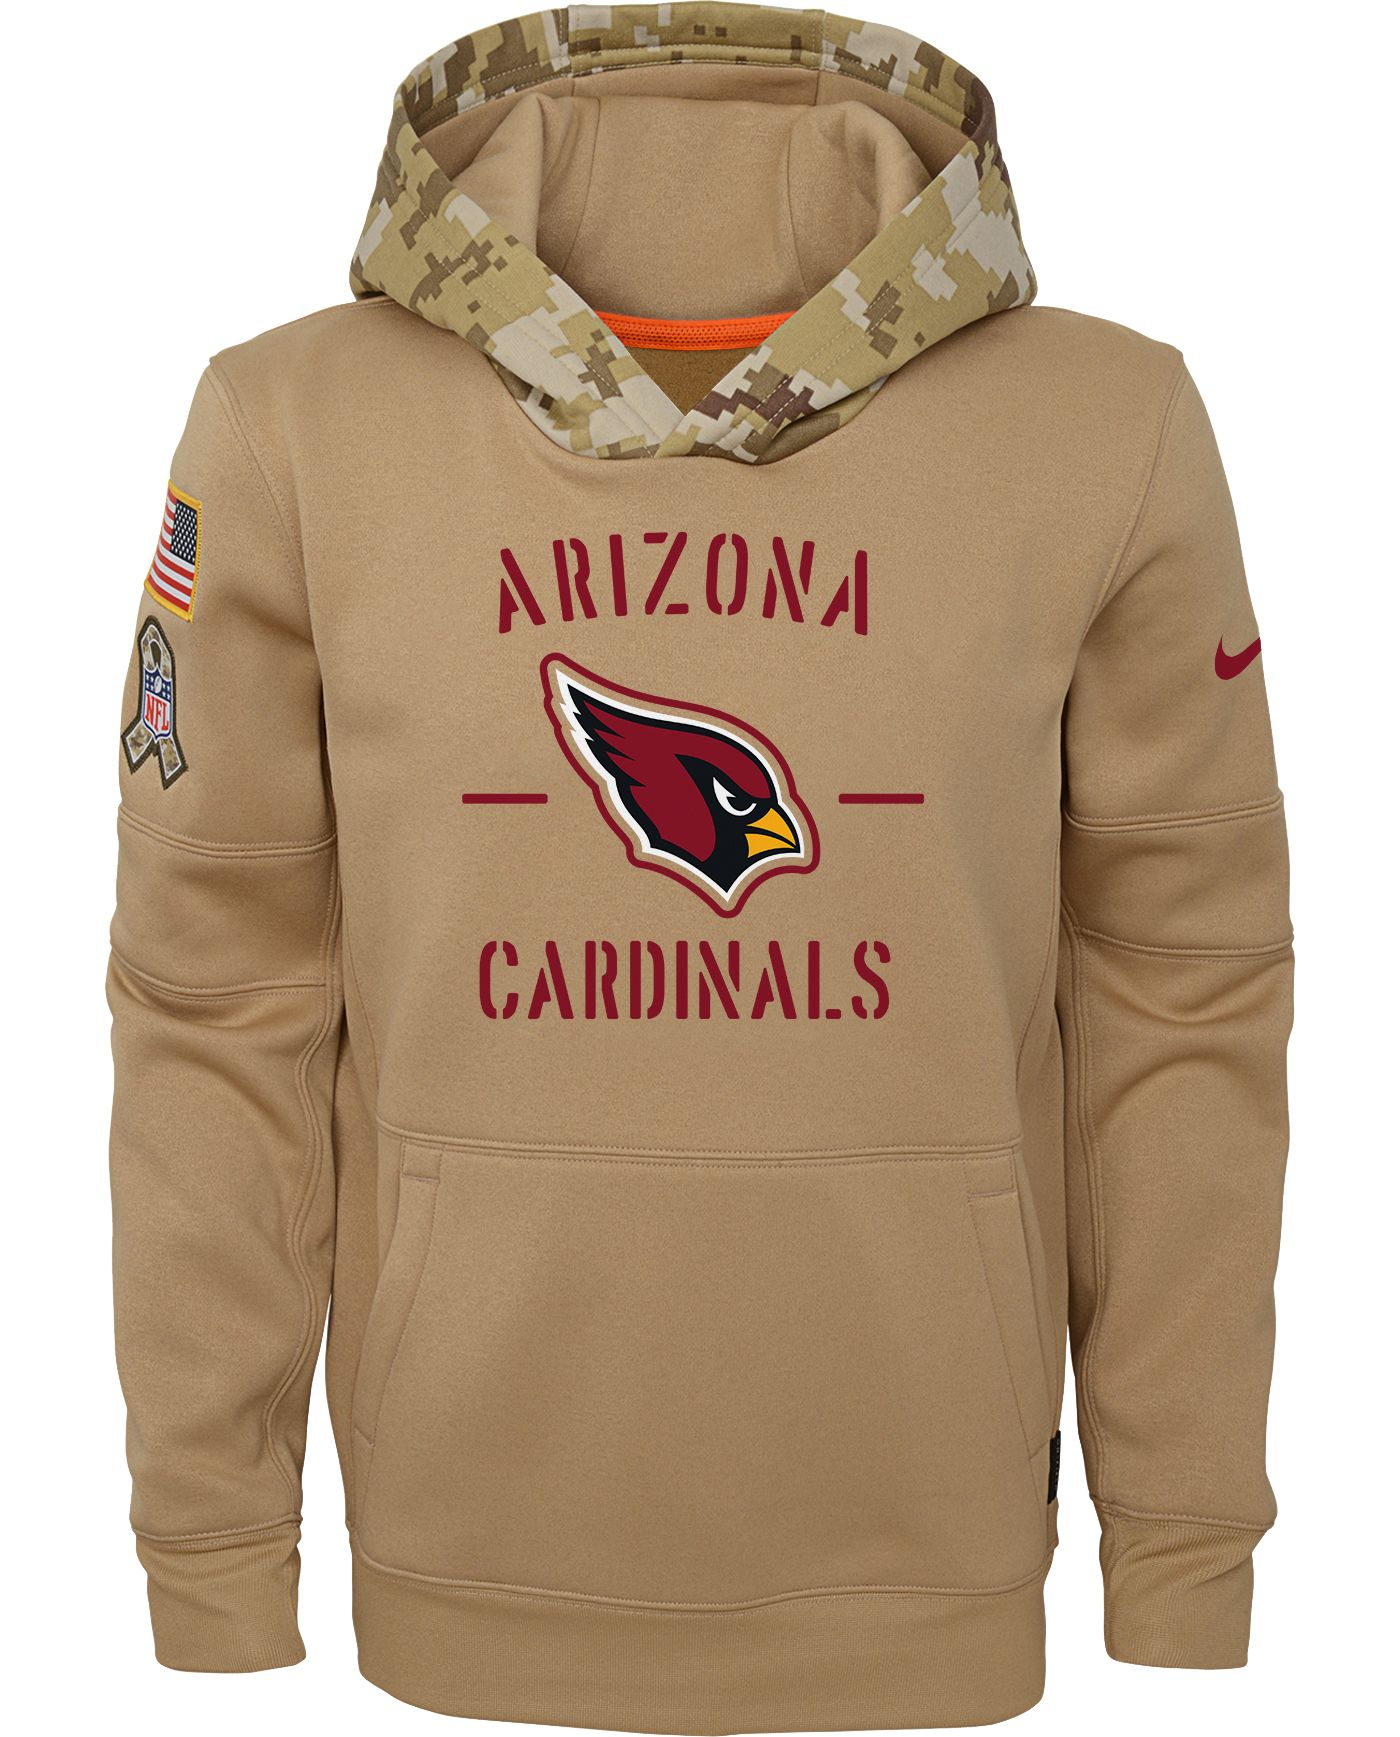 Nike Youth Salute to Service Arizona Cardinals Therma-FIT Beige Camo Hoodie